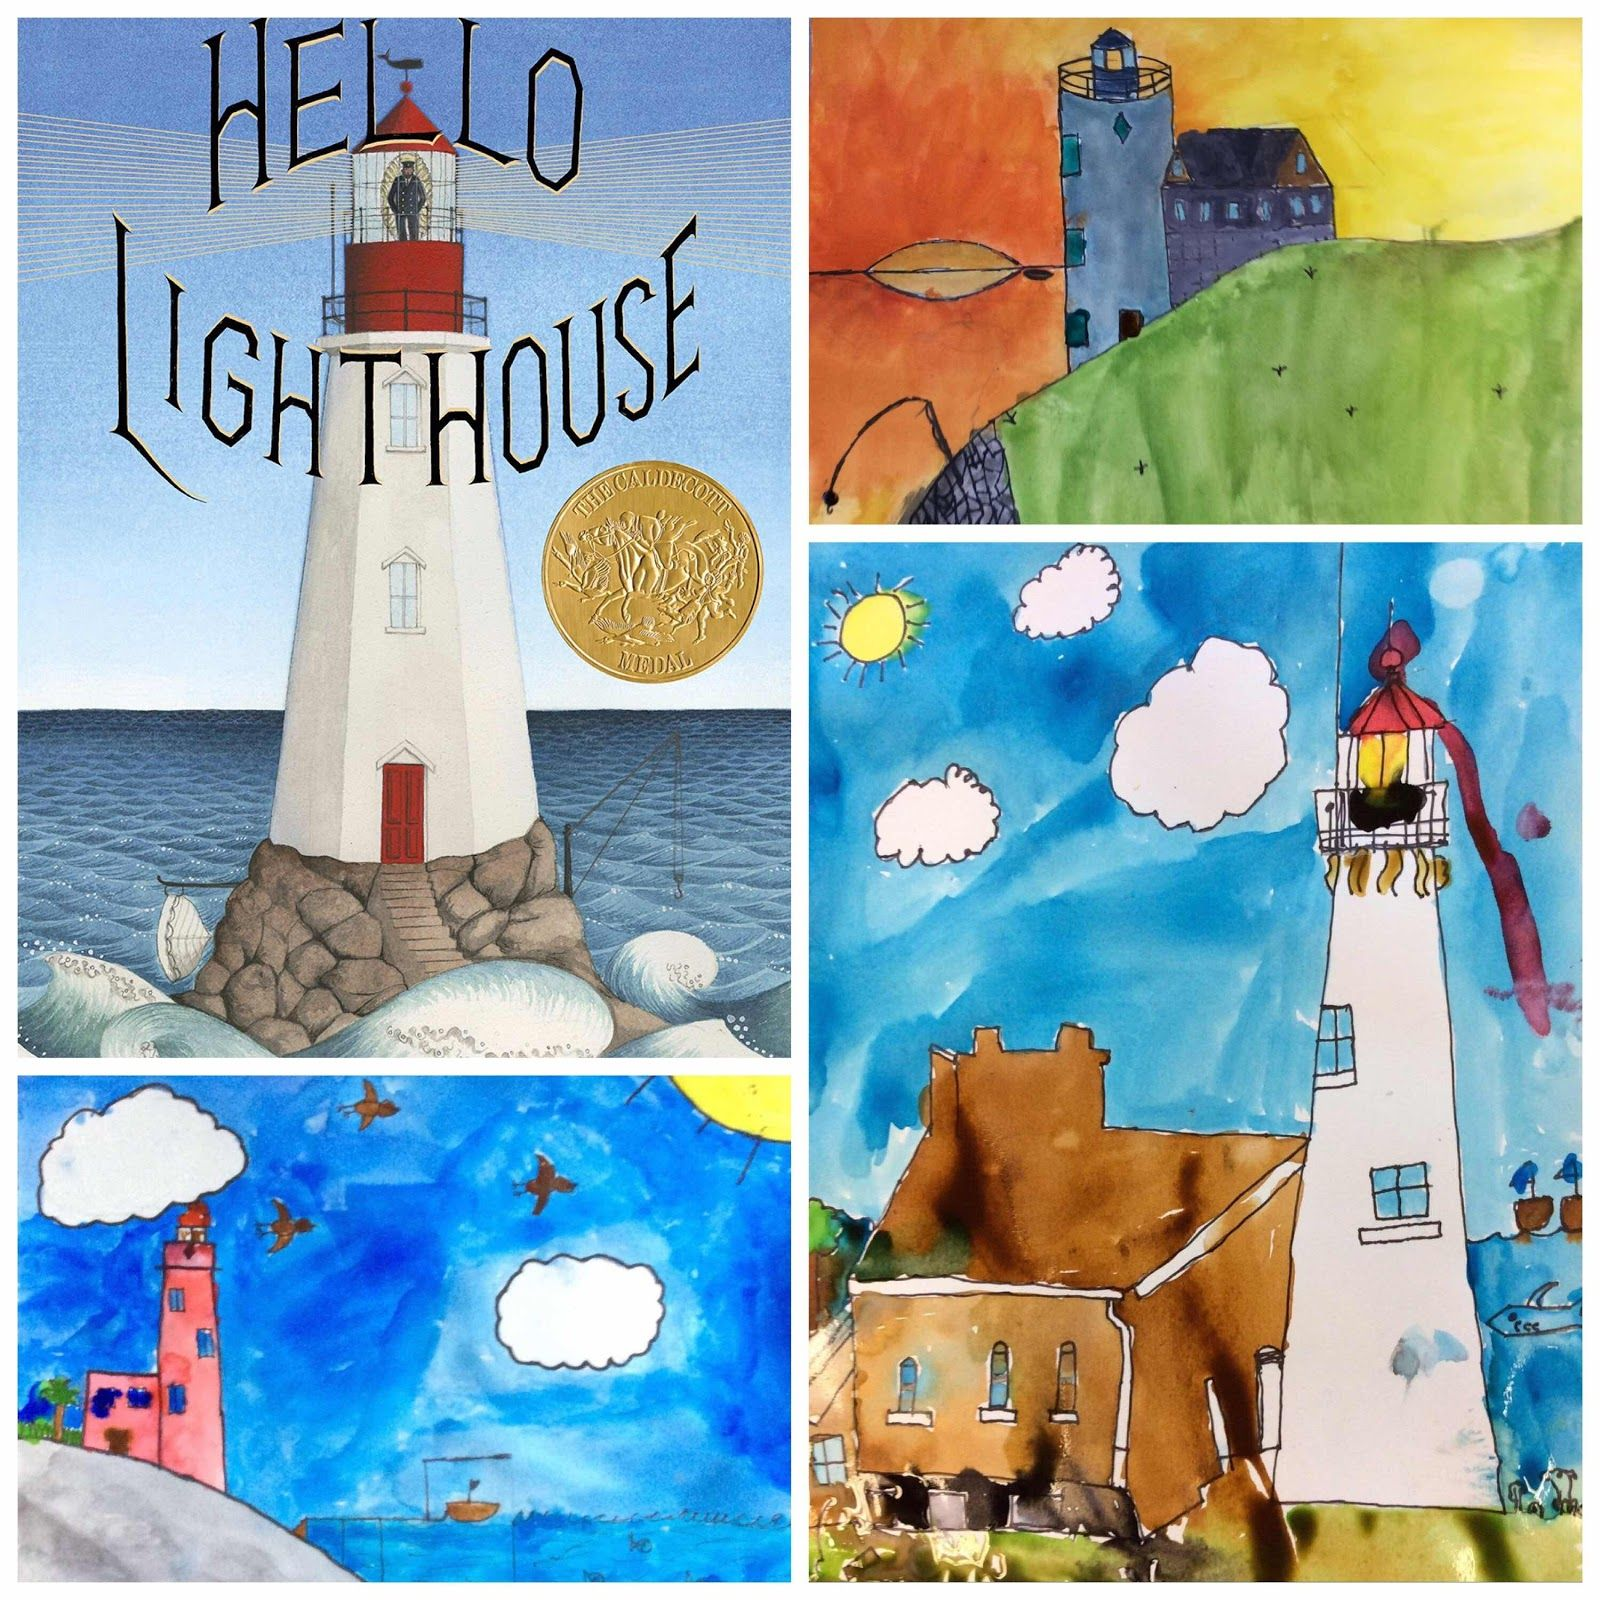 Lighthouse Landscapes, 4th grade The 5th of november